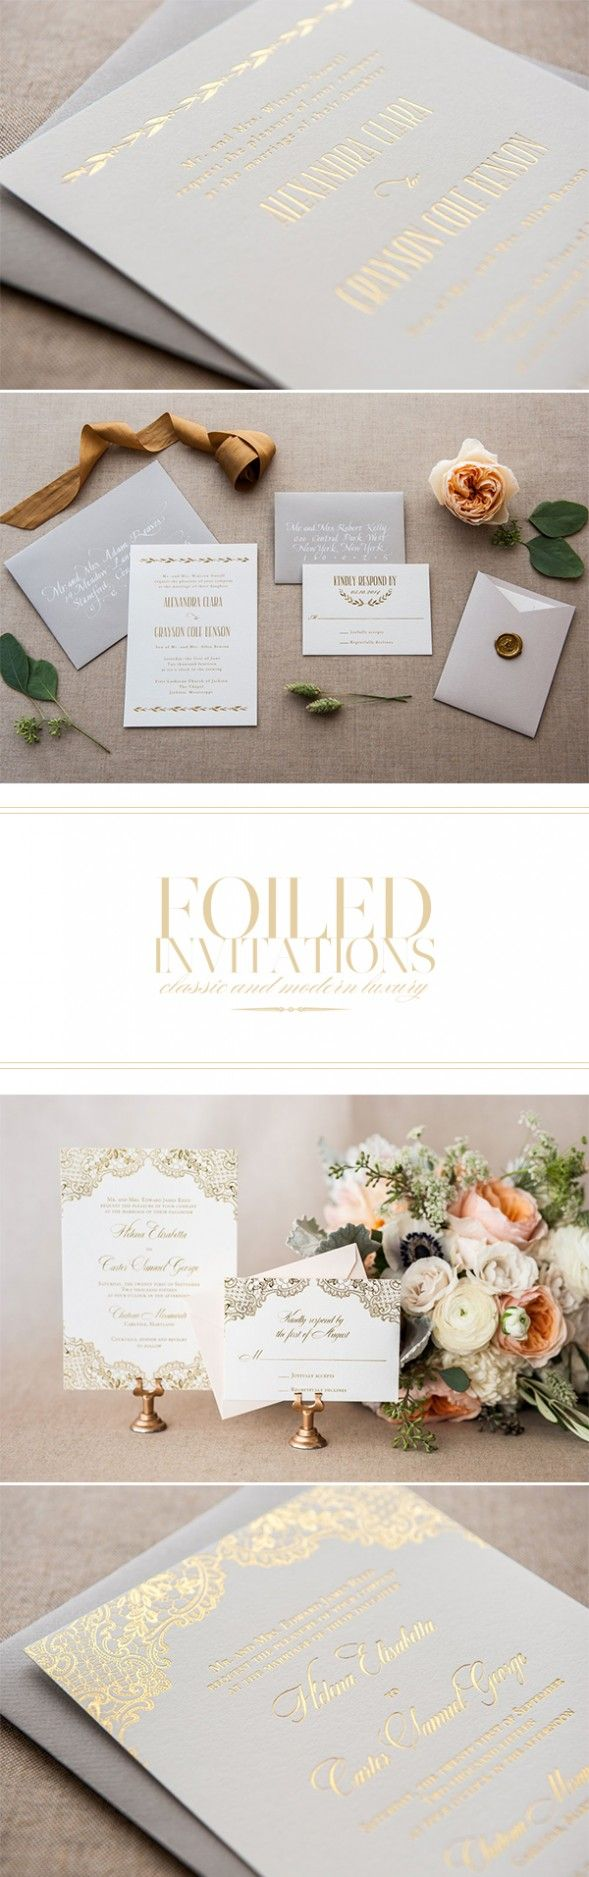 50 Best Card Images On Pinterest Invitation Cards Invitations